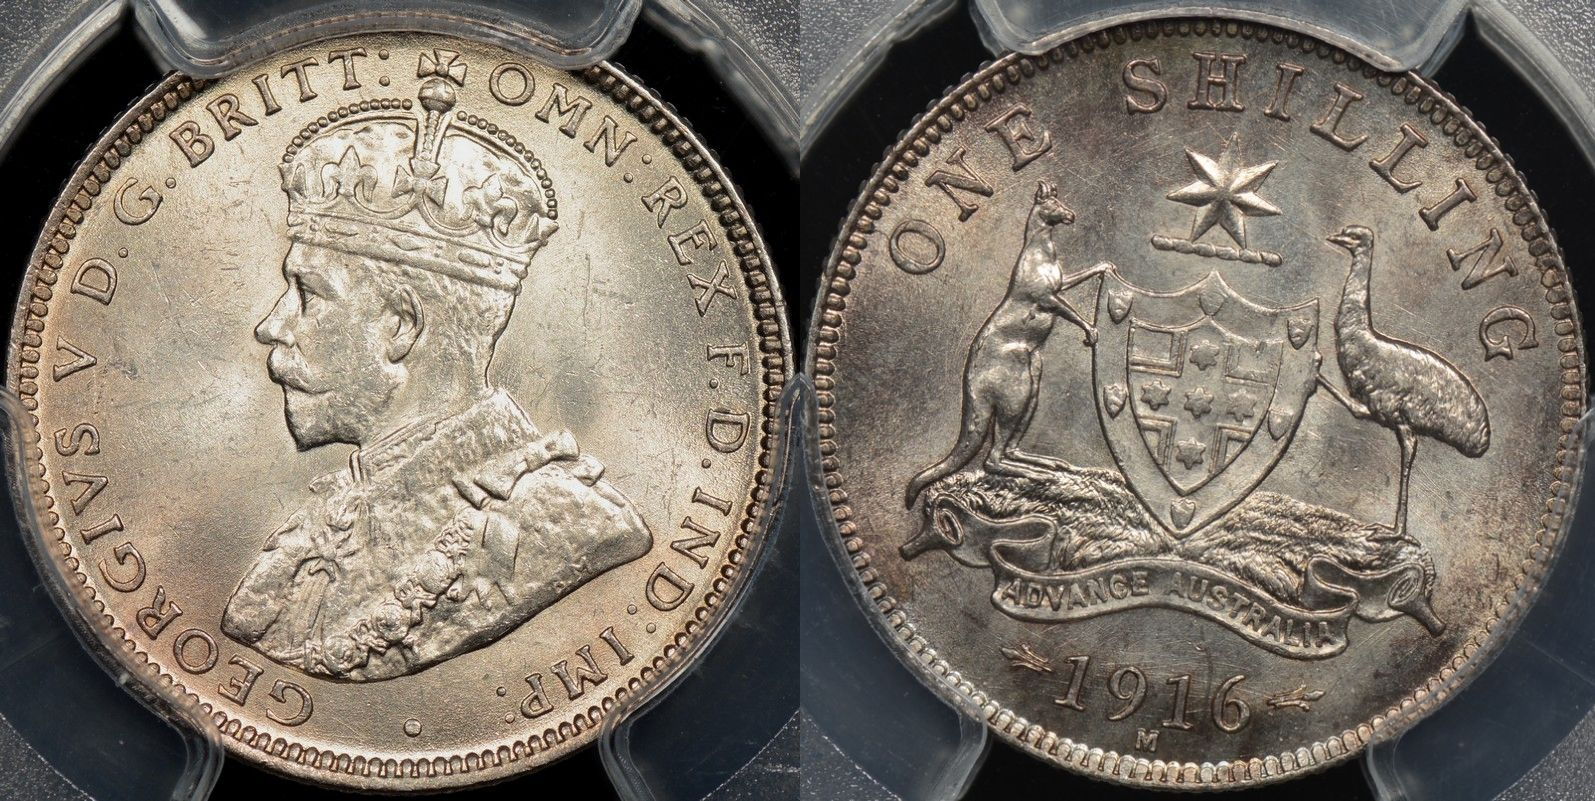 Australia 1916 m shilling 1s Choice Uncirculated PCGS MS64